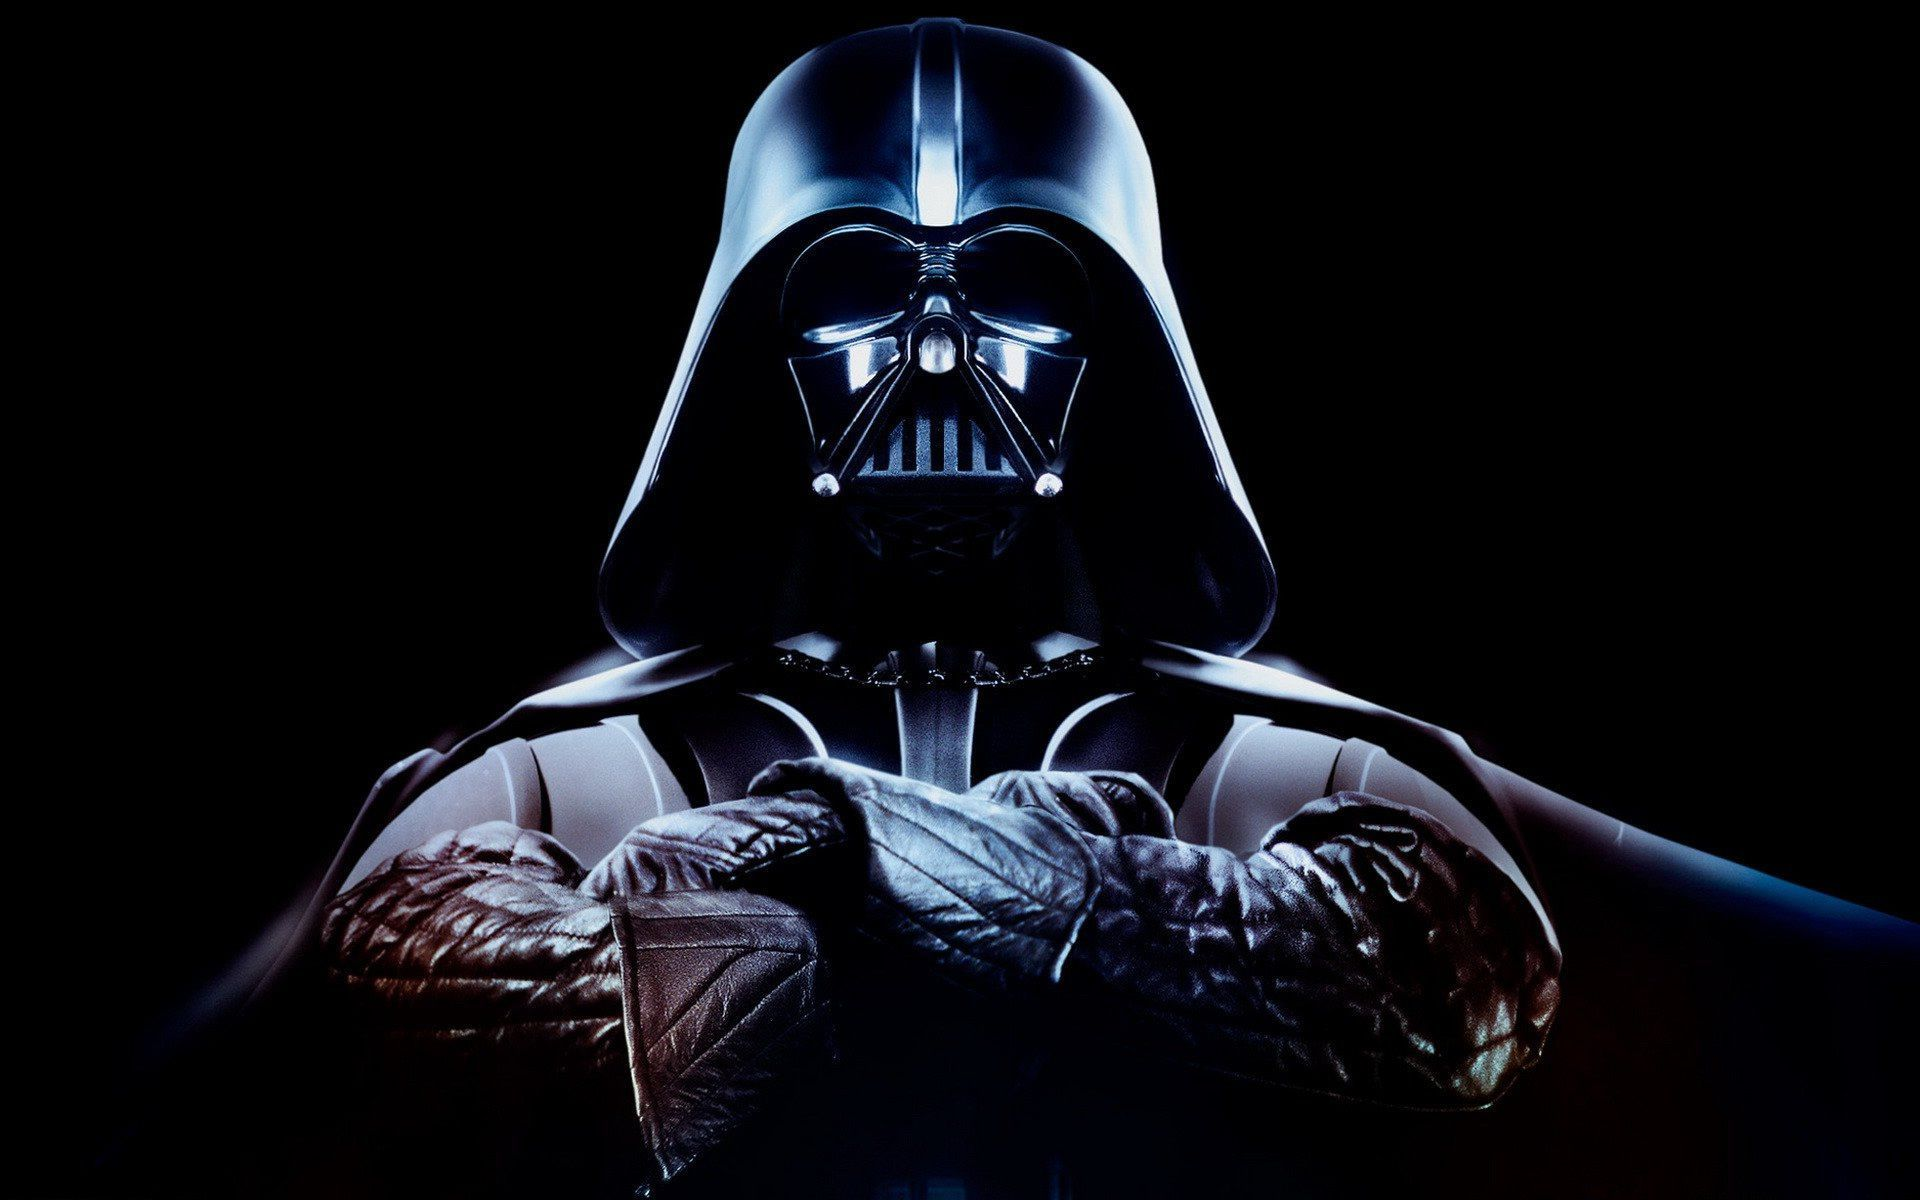 darth-vader-digital-art-hd-wallpaper-192